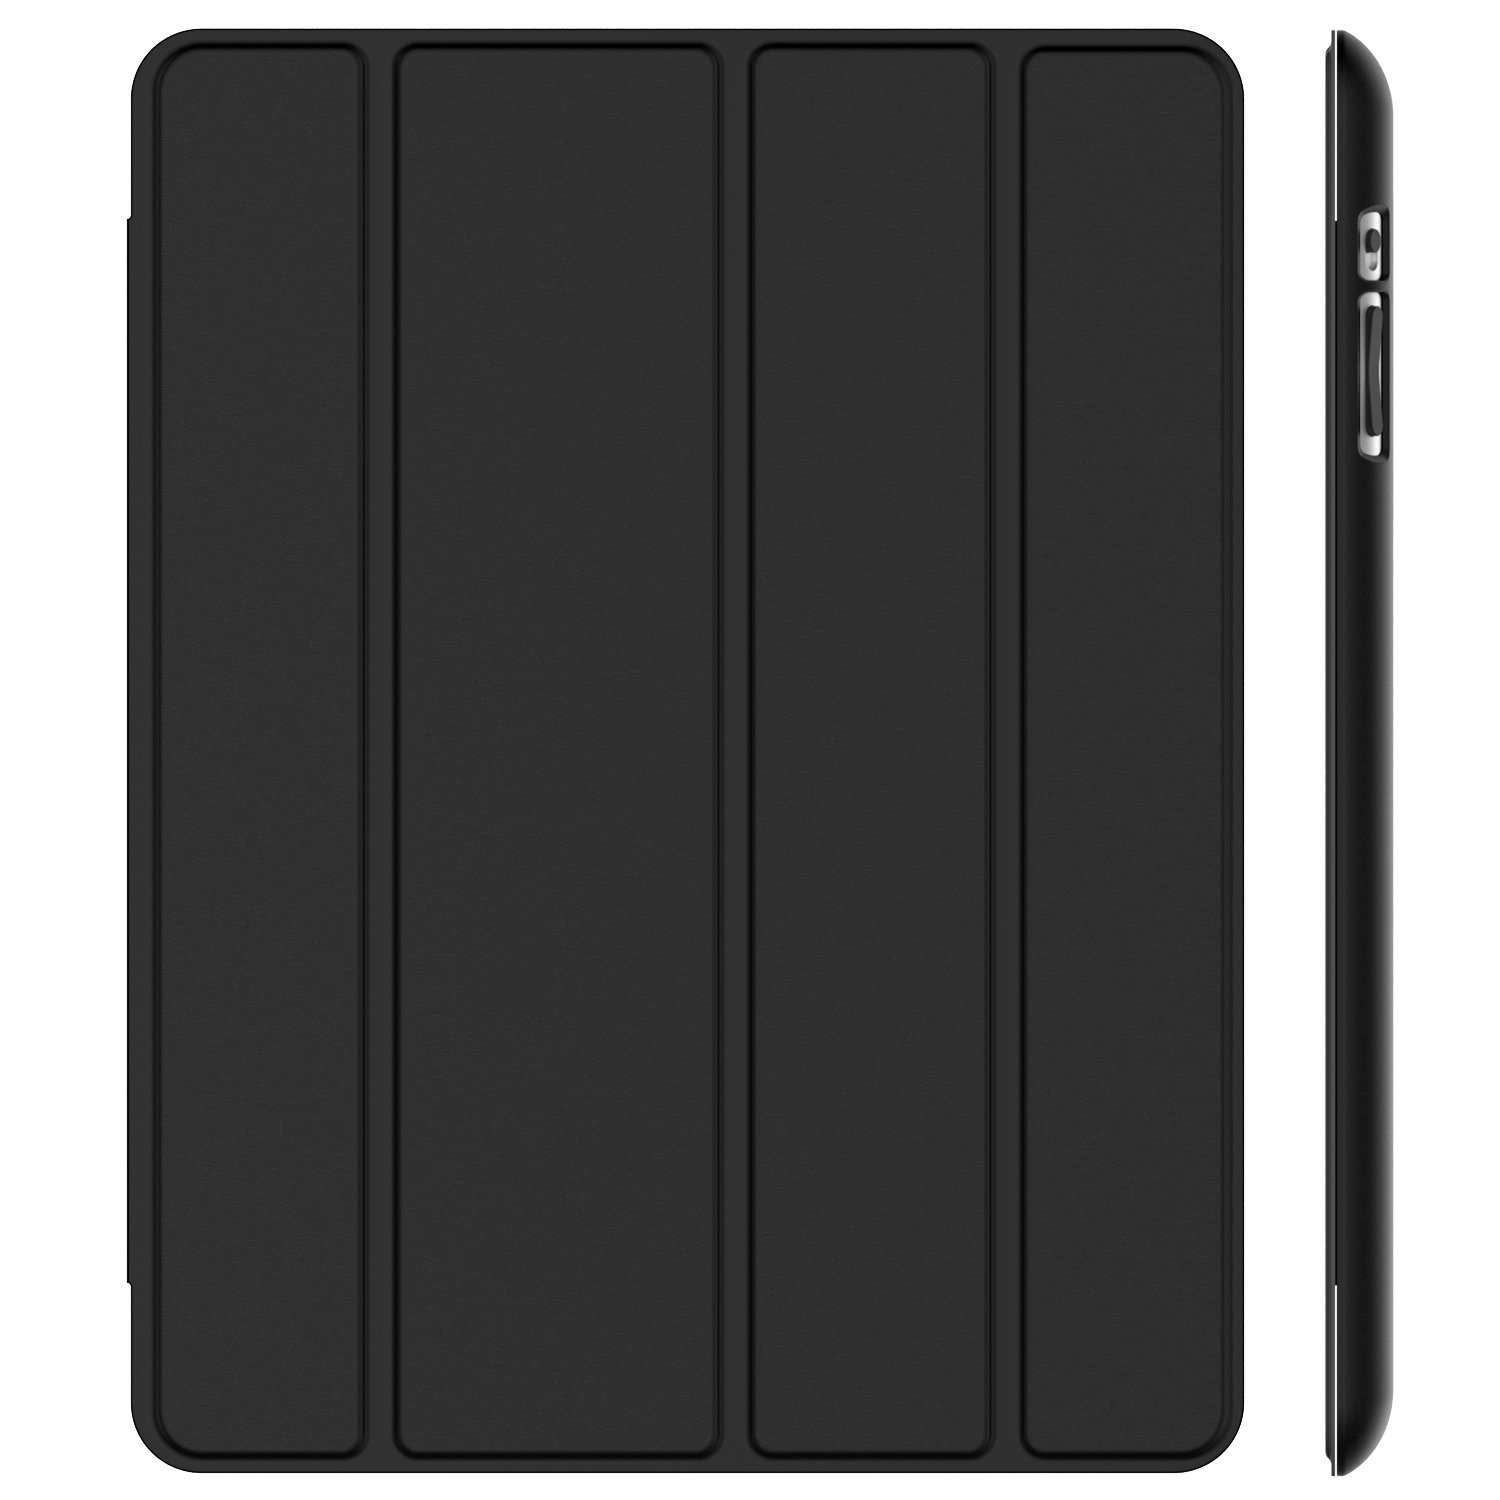 JETech Case for Apple iPad 2 3 4 (Old Model) Smart Cover with Auto Sleep/Wake (Black)